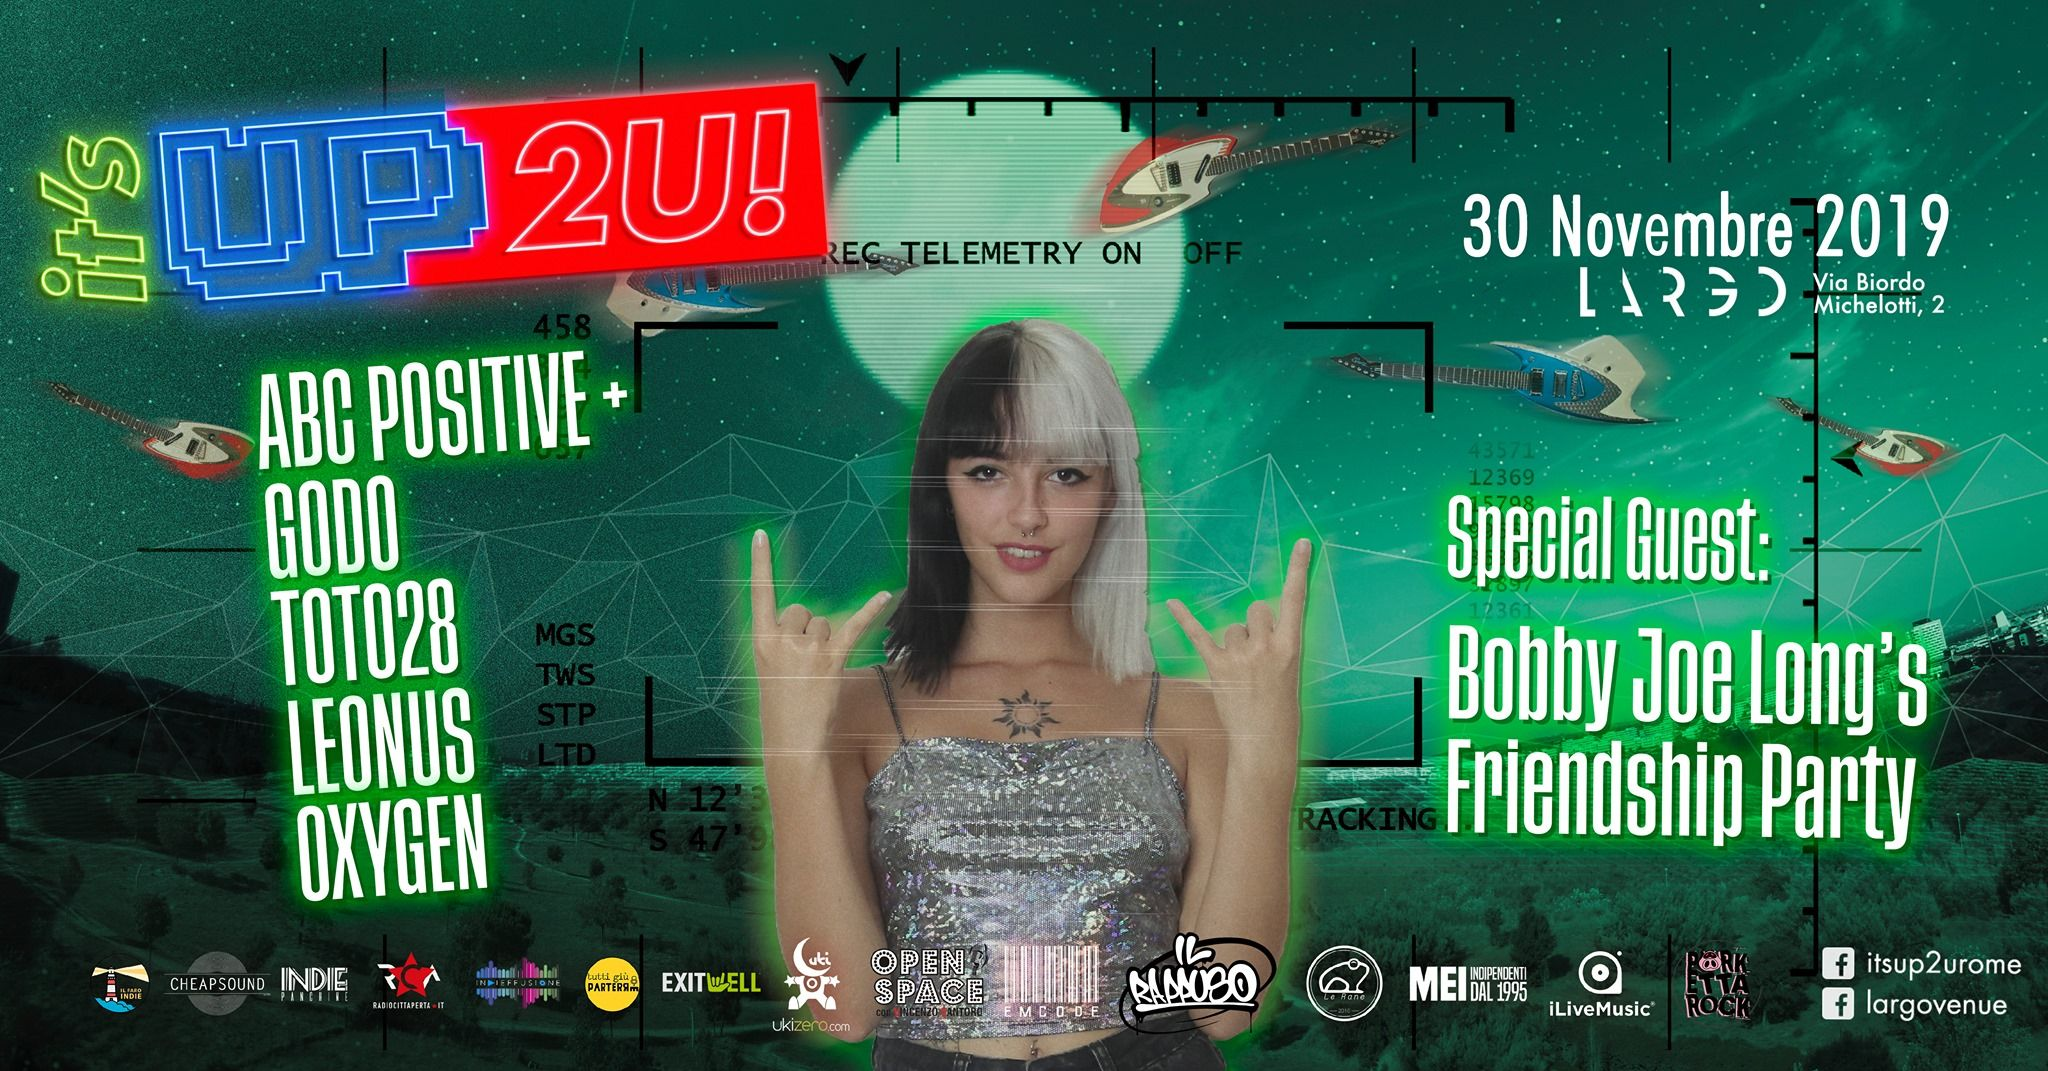 It's Up 2U! – III° edizione – Terza serata